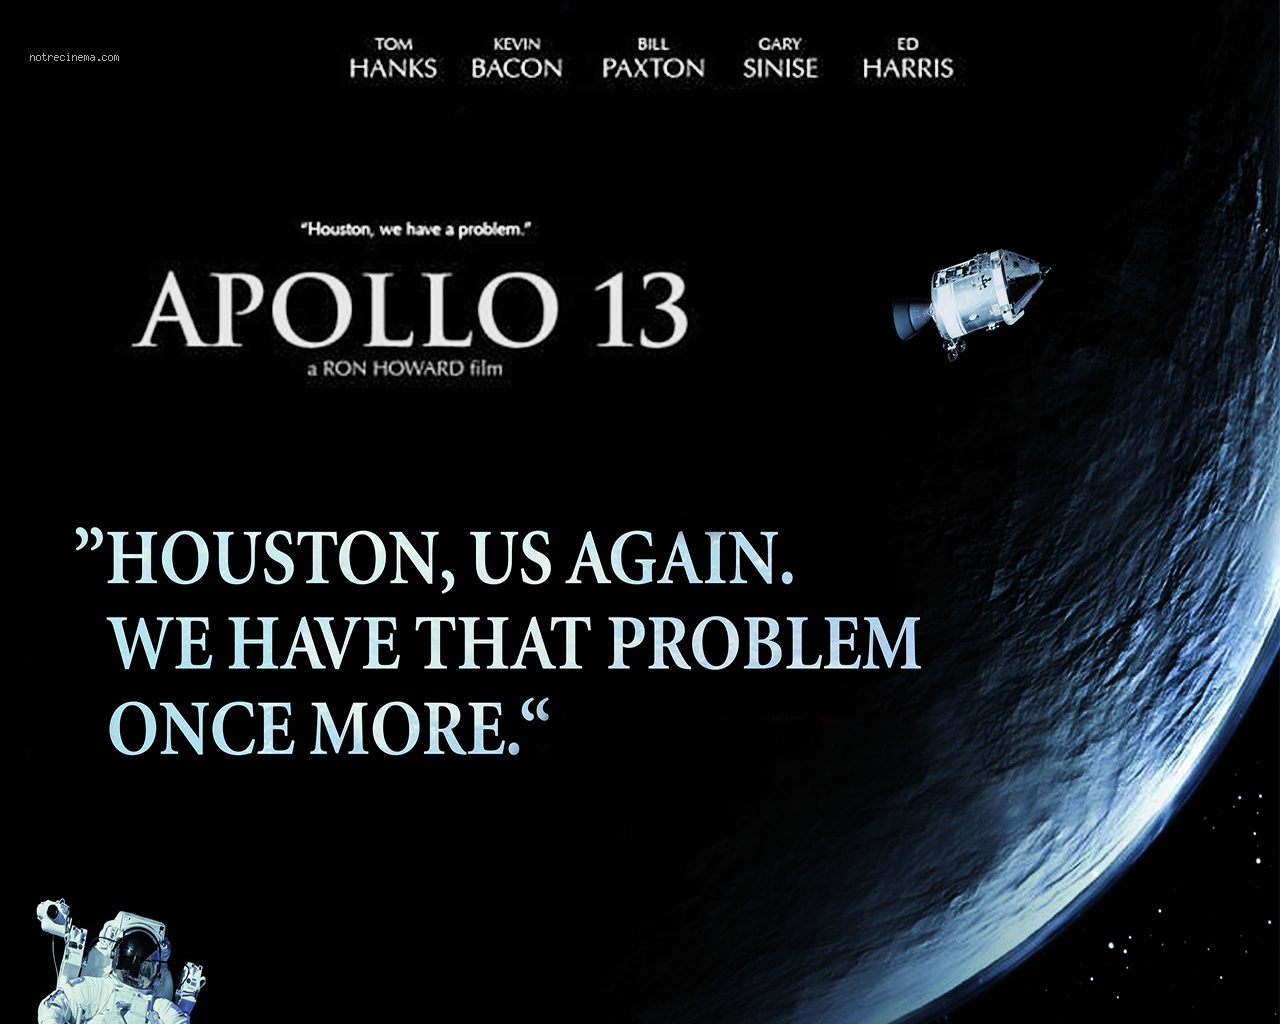 The MeGITS Press: Apollo 13 - Movie Review - A must watch ...